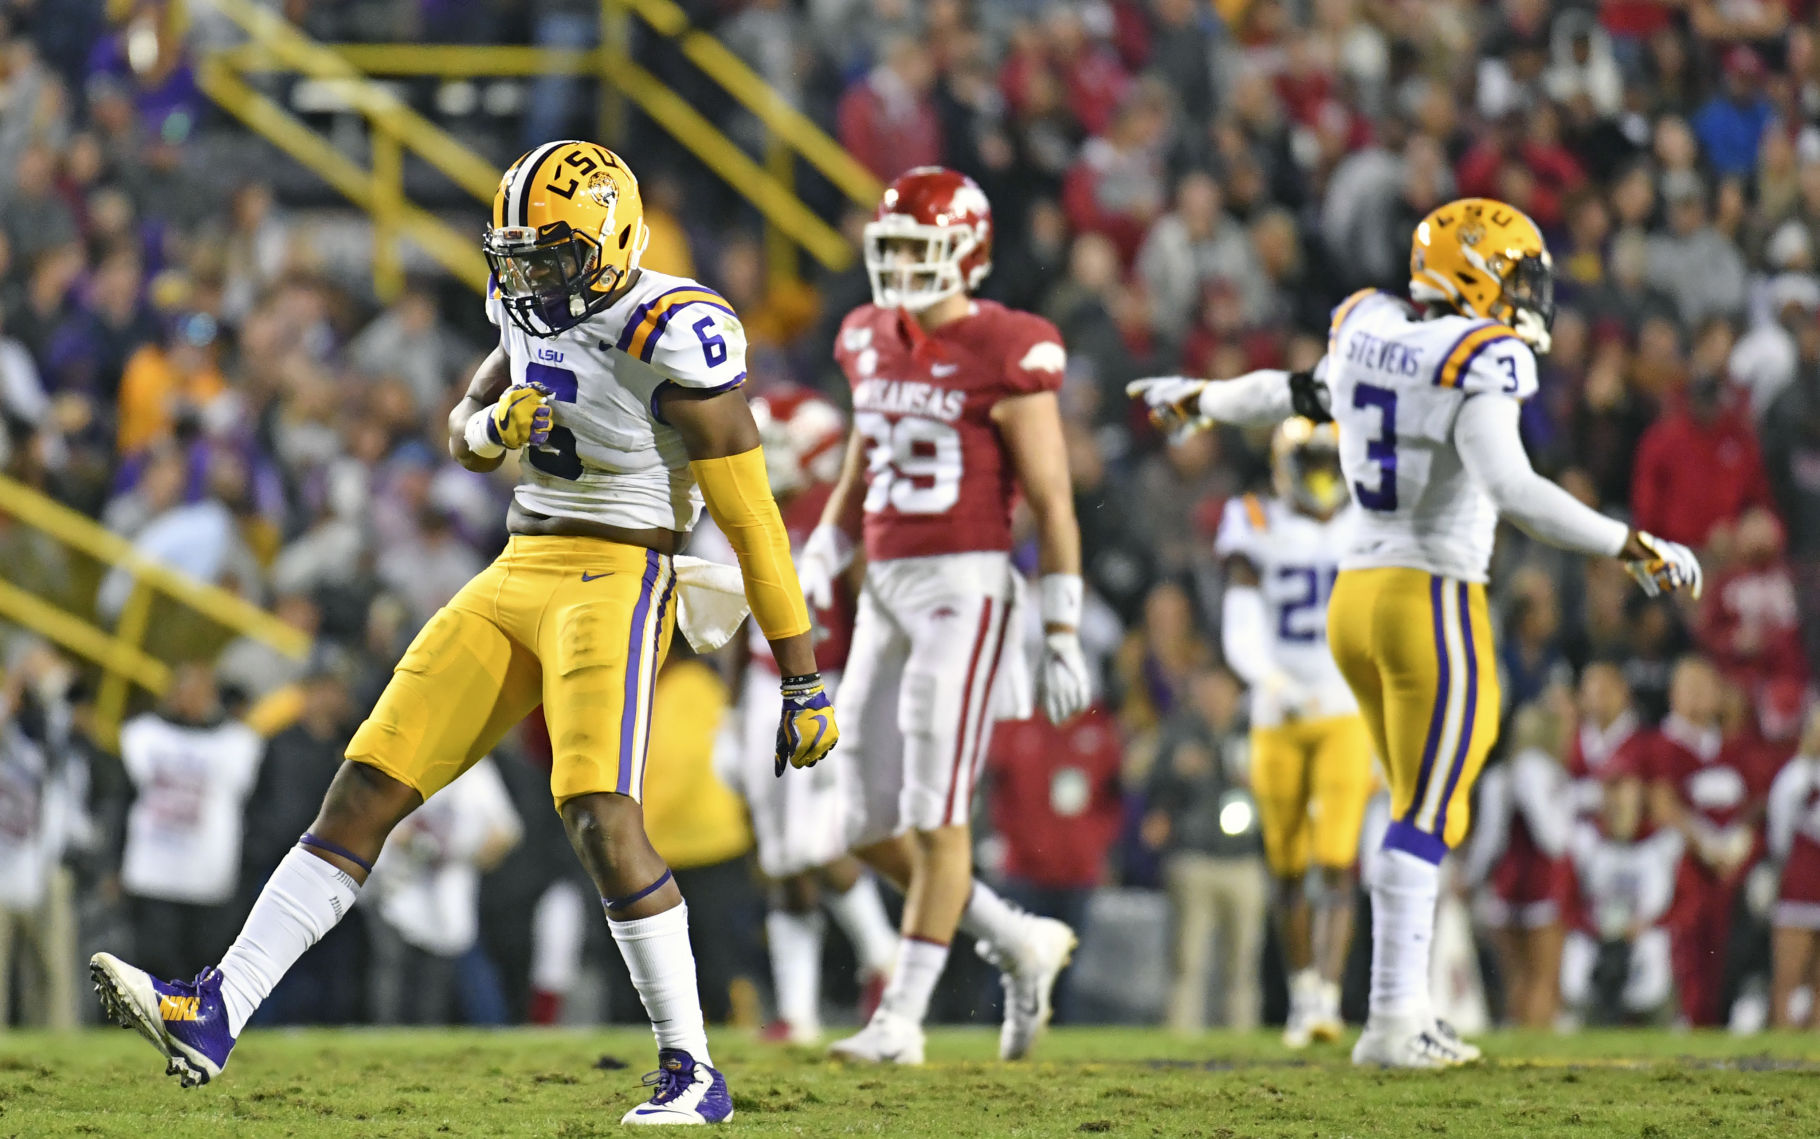 LSU Vs Arkansas Live Updates What Ed Orgeron Others Had To Say After Clinching SEC Title LSU Theadvocate com